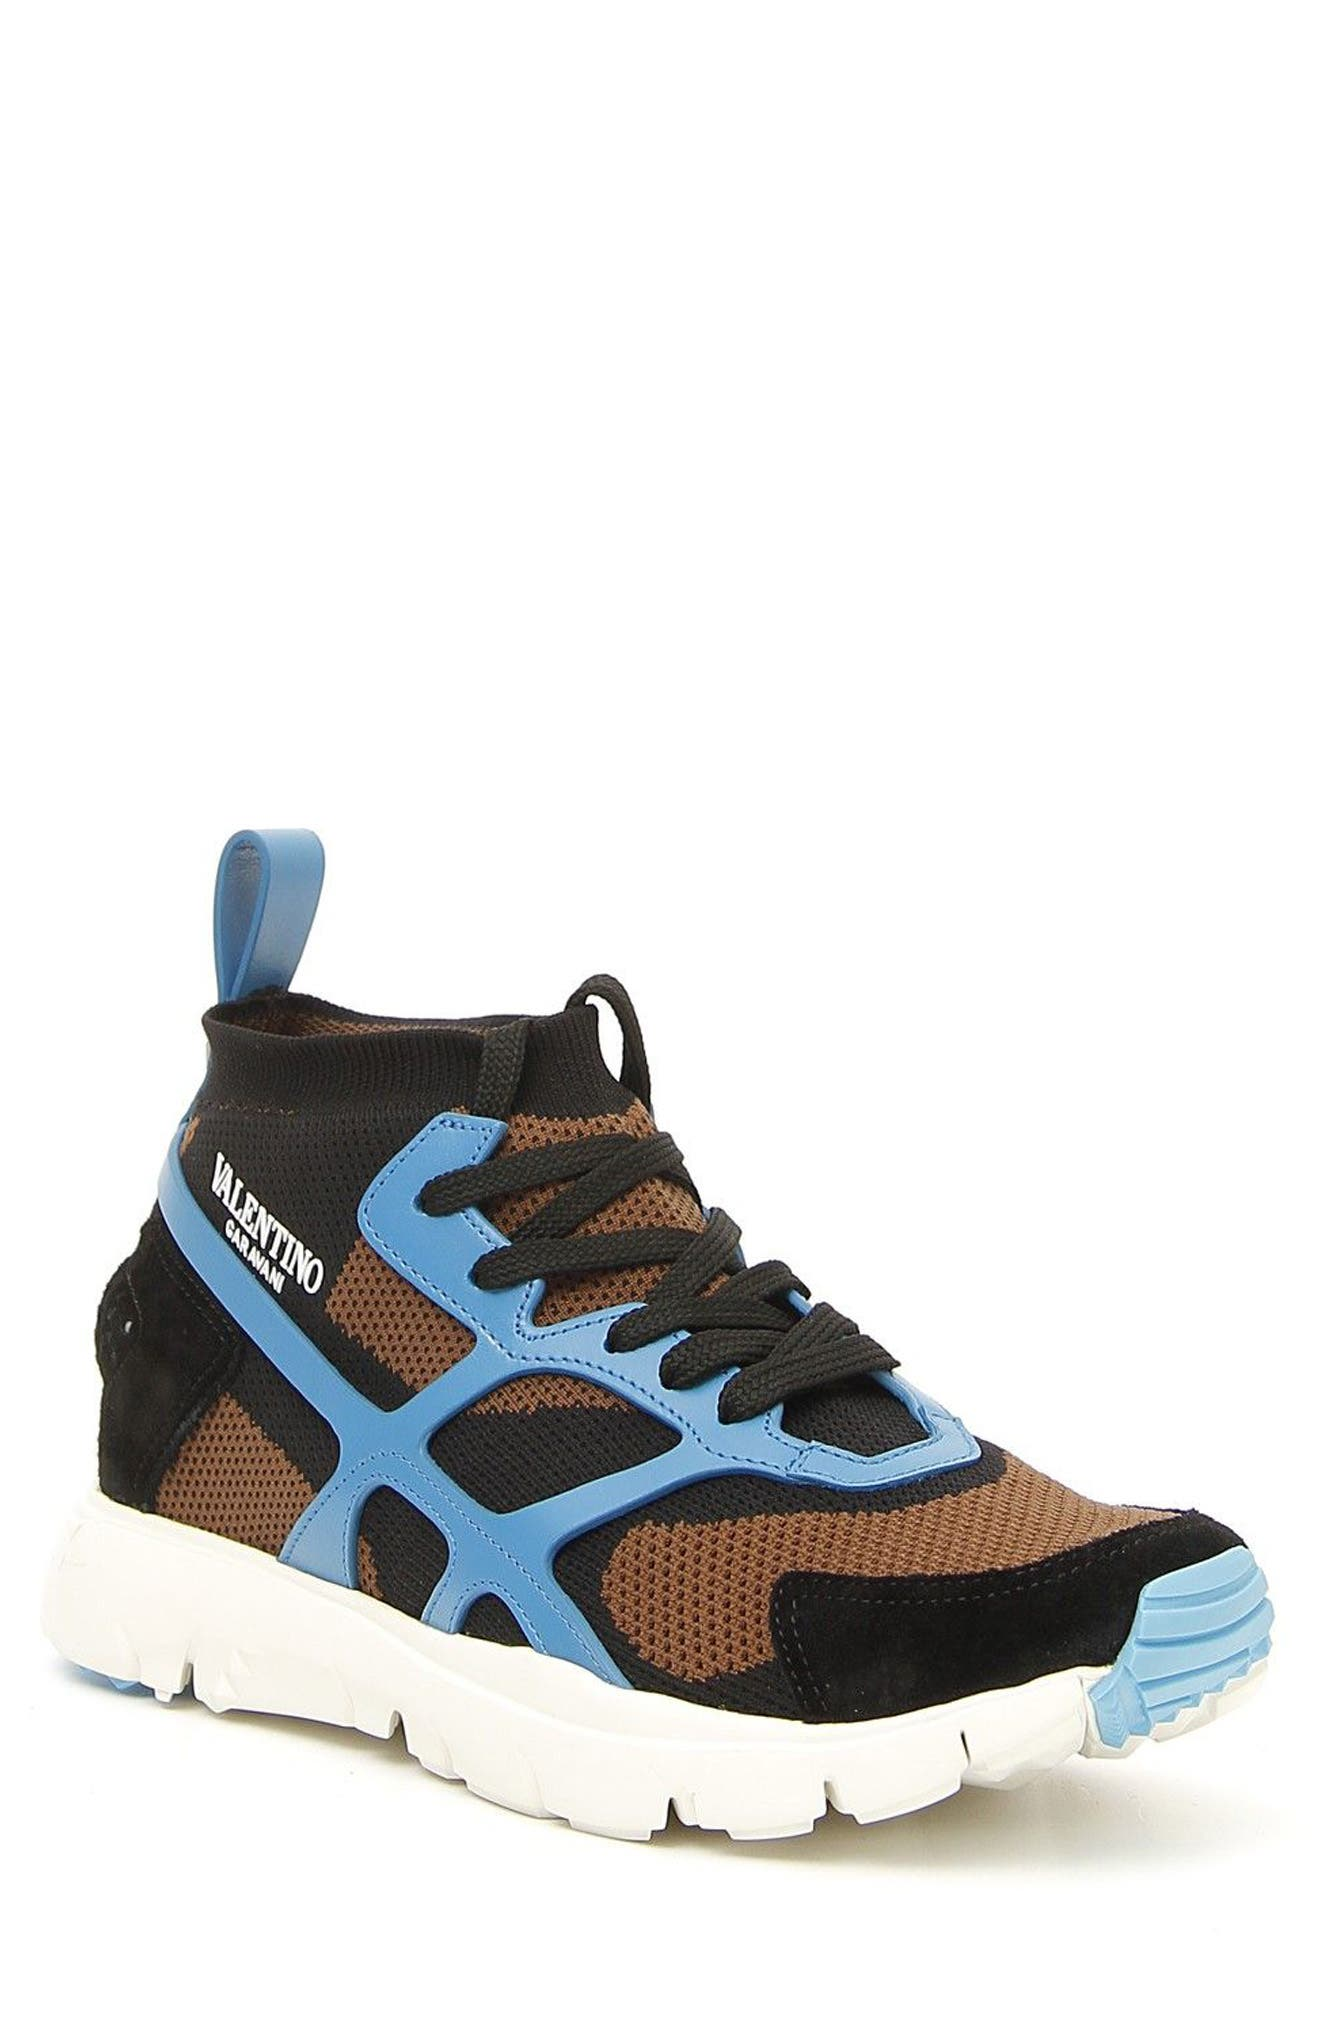 Sound High Sneaker,                         Main,                         color, Army Green/ Nero/ Pool Blue